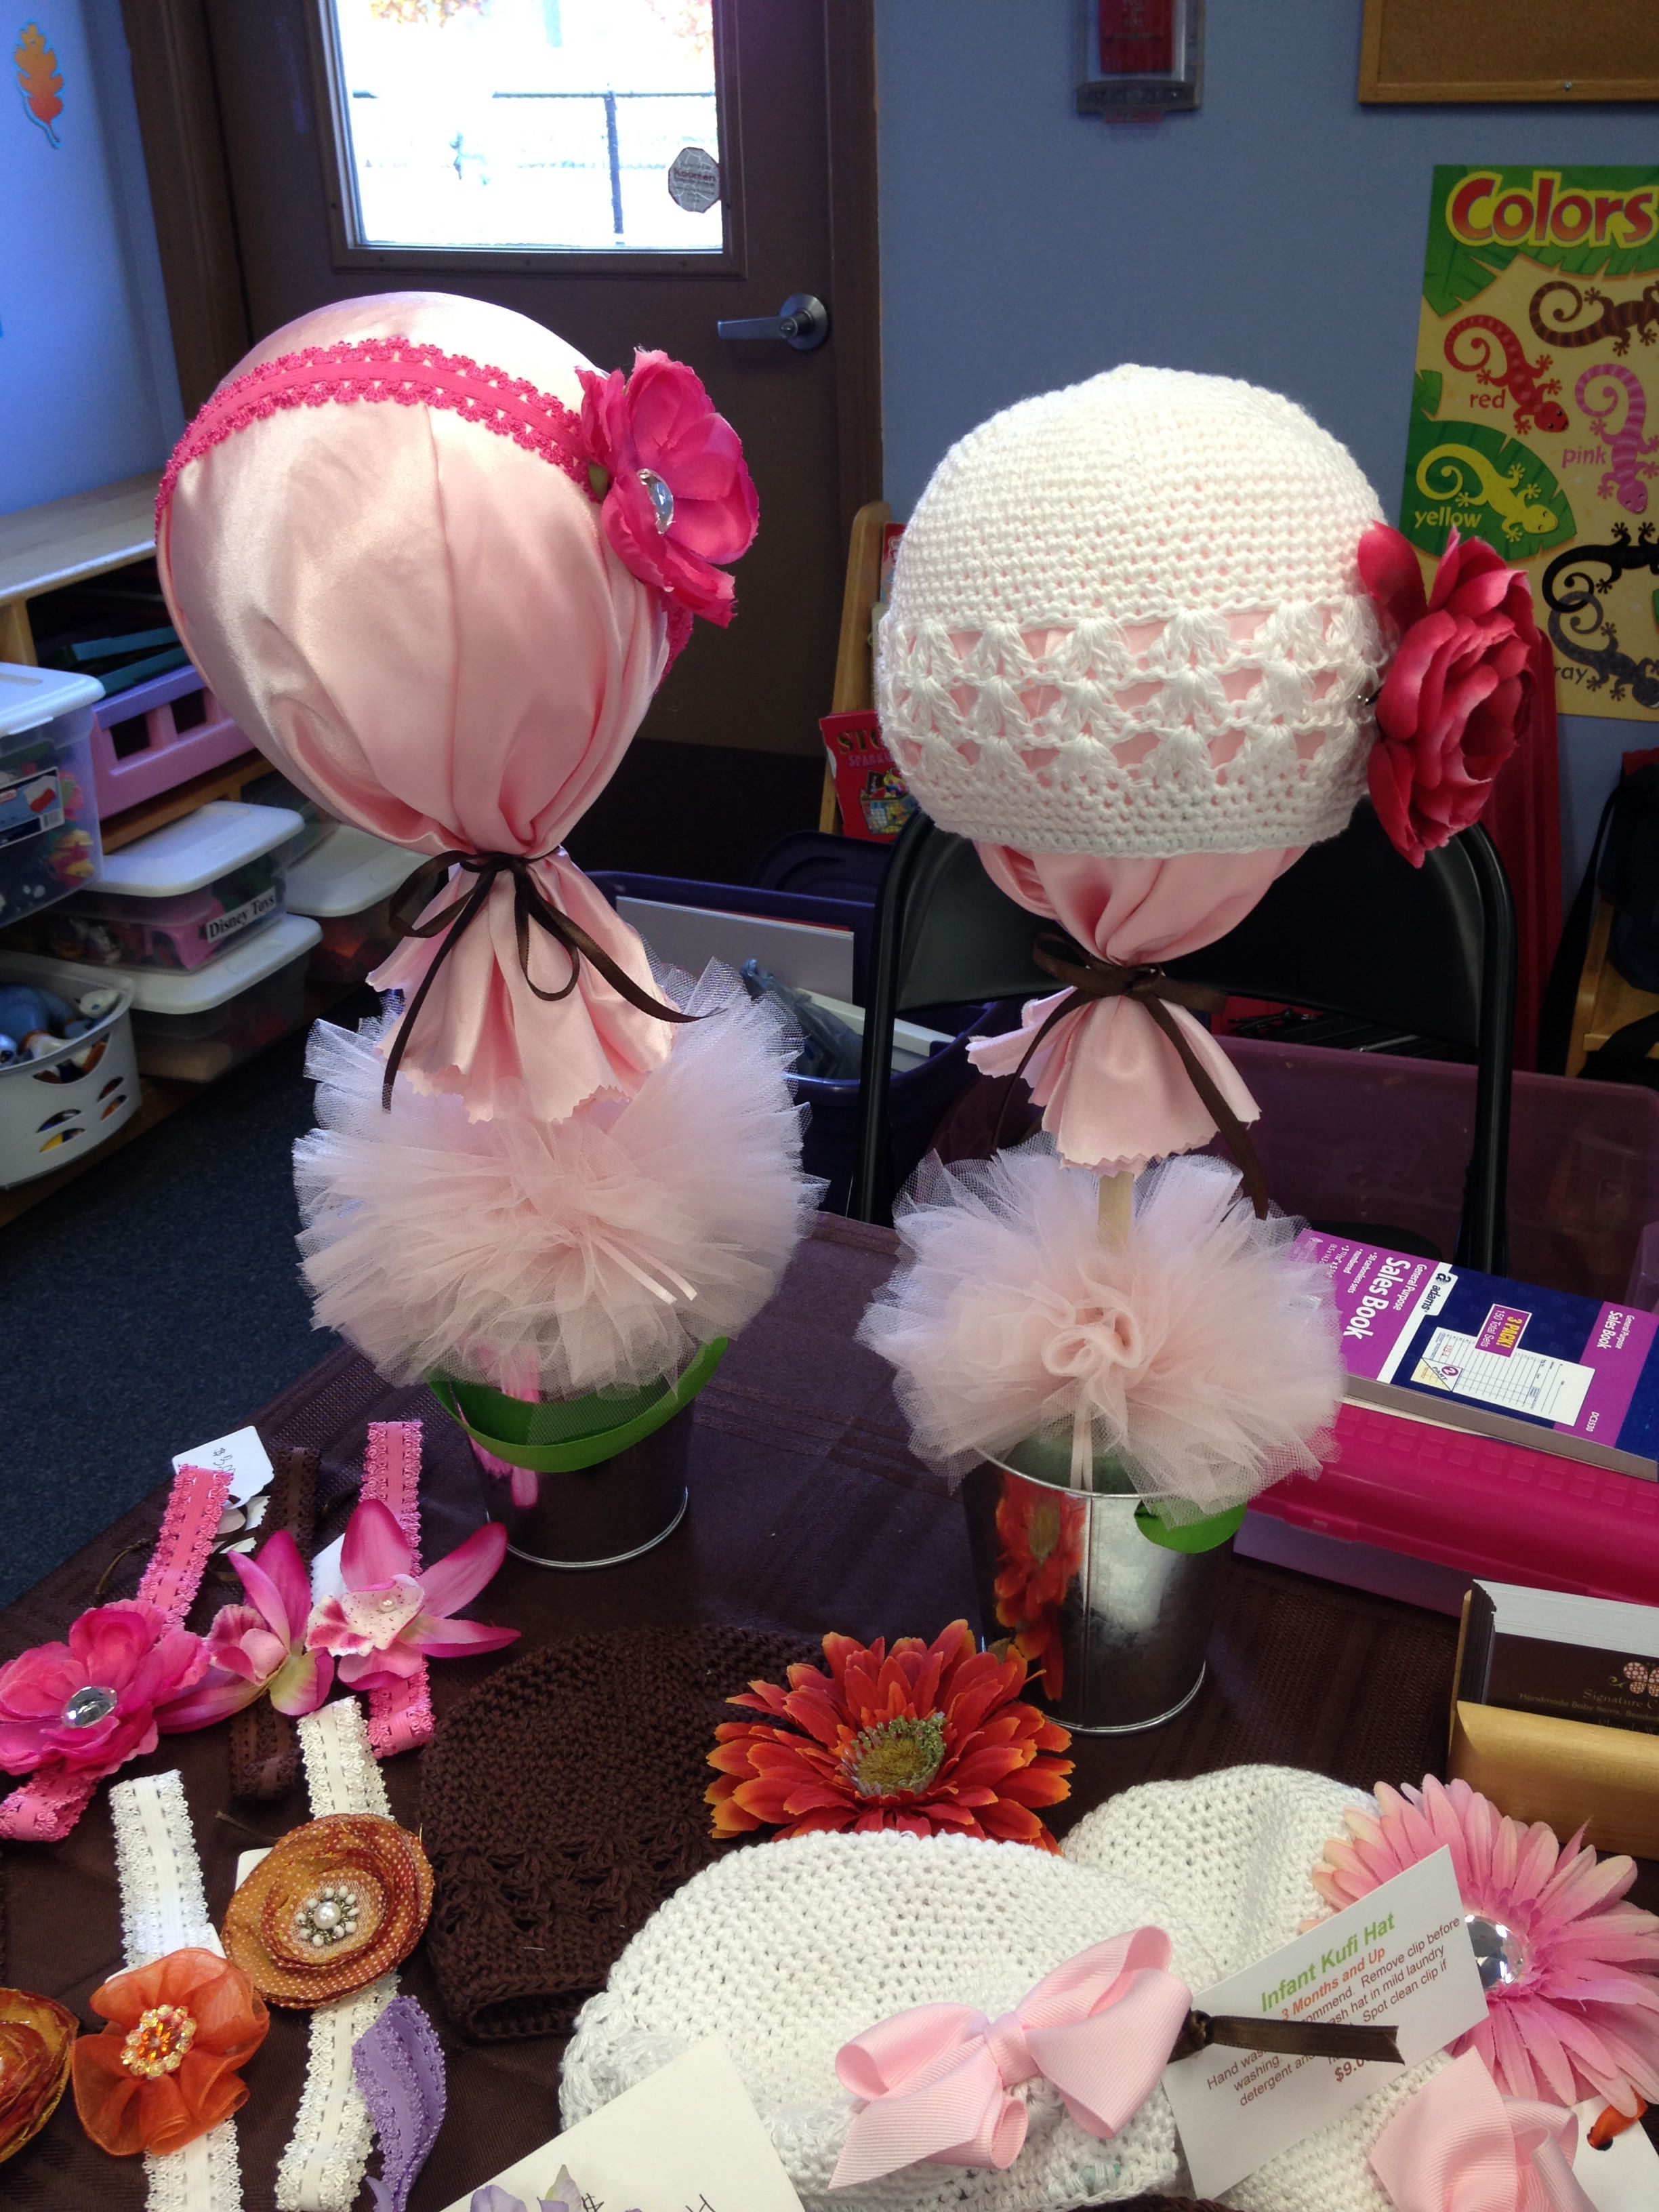 My Hat And Headband Displays I Made Last Minute For A Vendor Fair Craft Show Display Booth